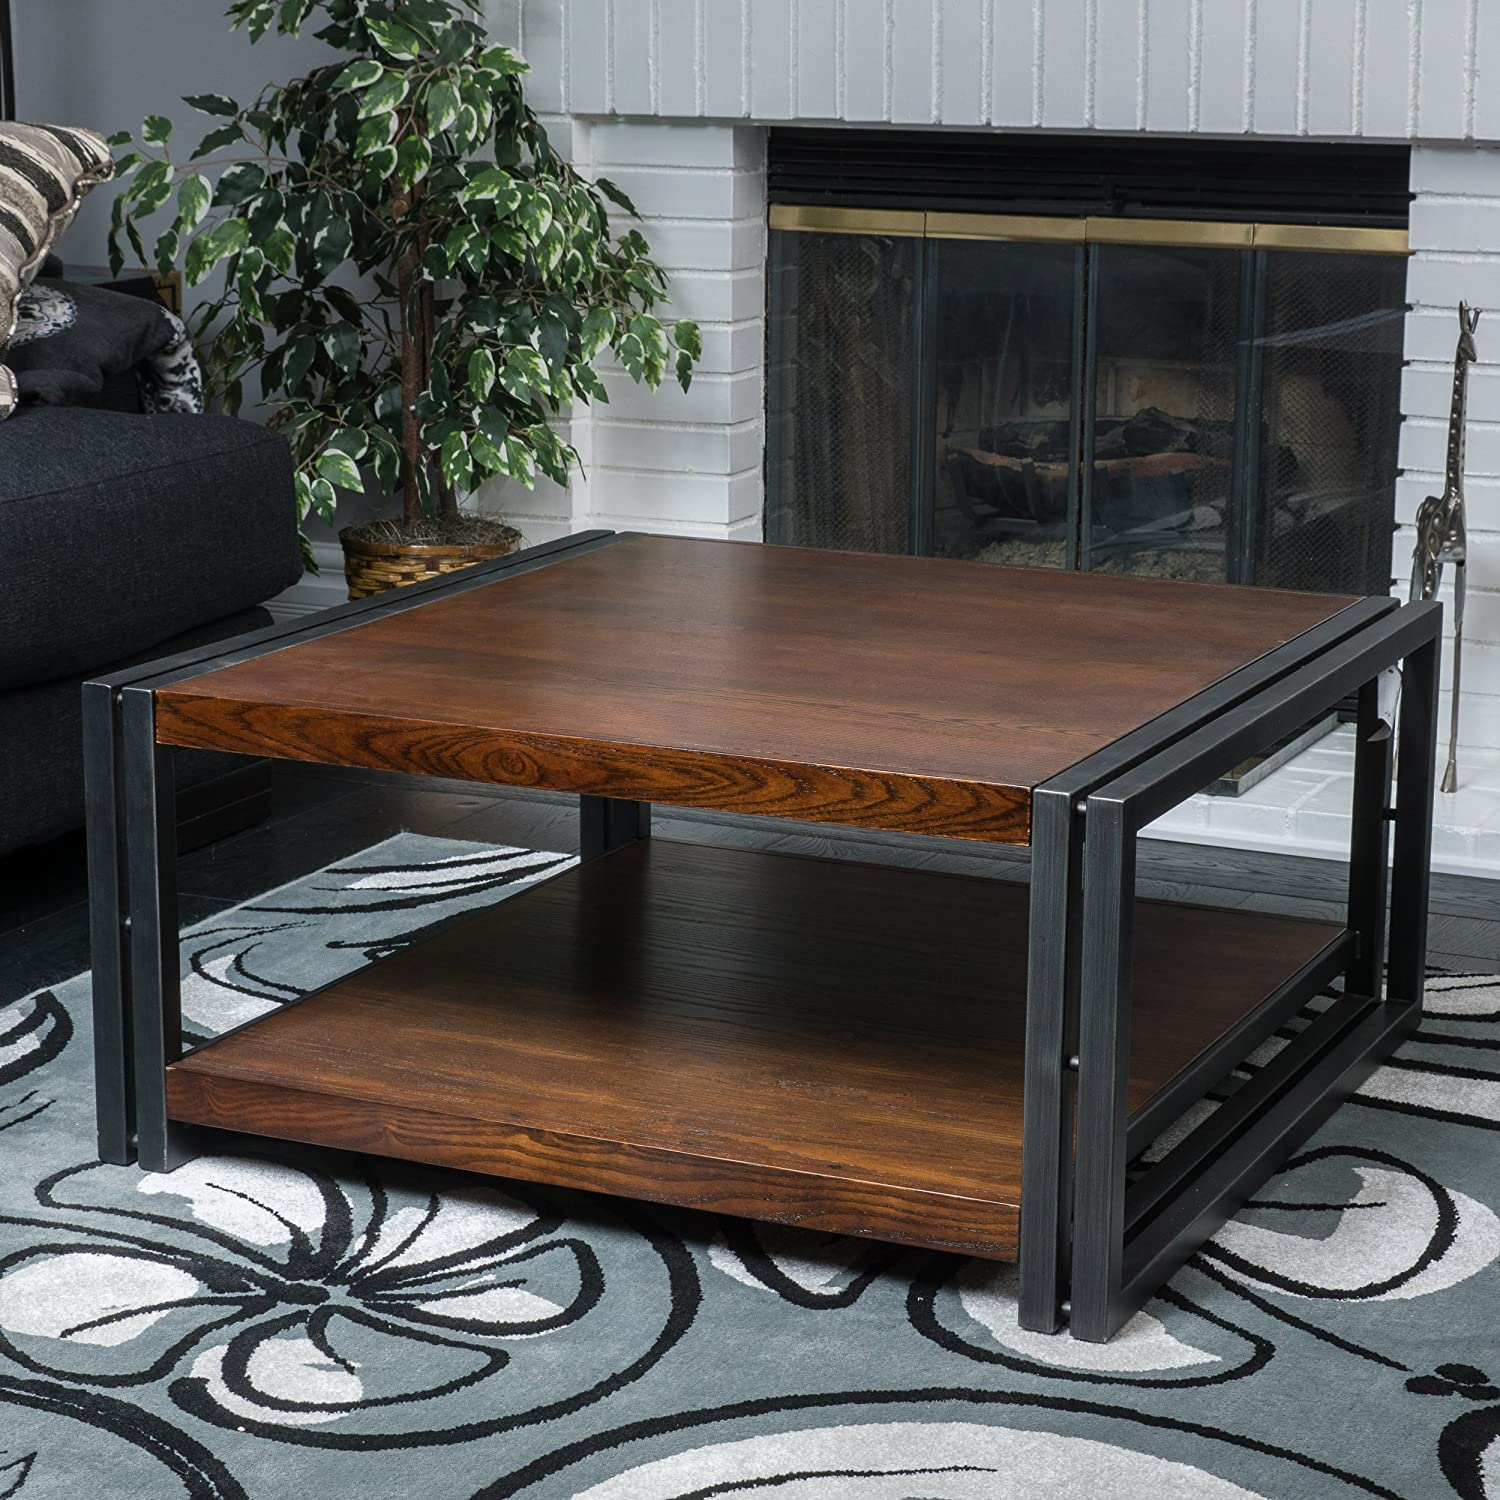 Christopher Knight Home 296327 Manchester Coffee Table, Dark Oak